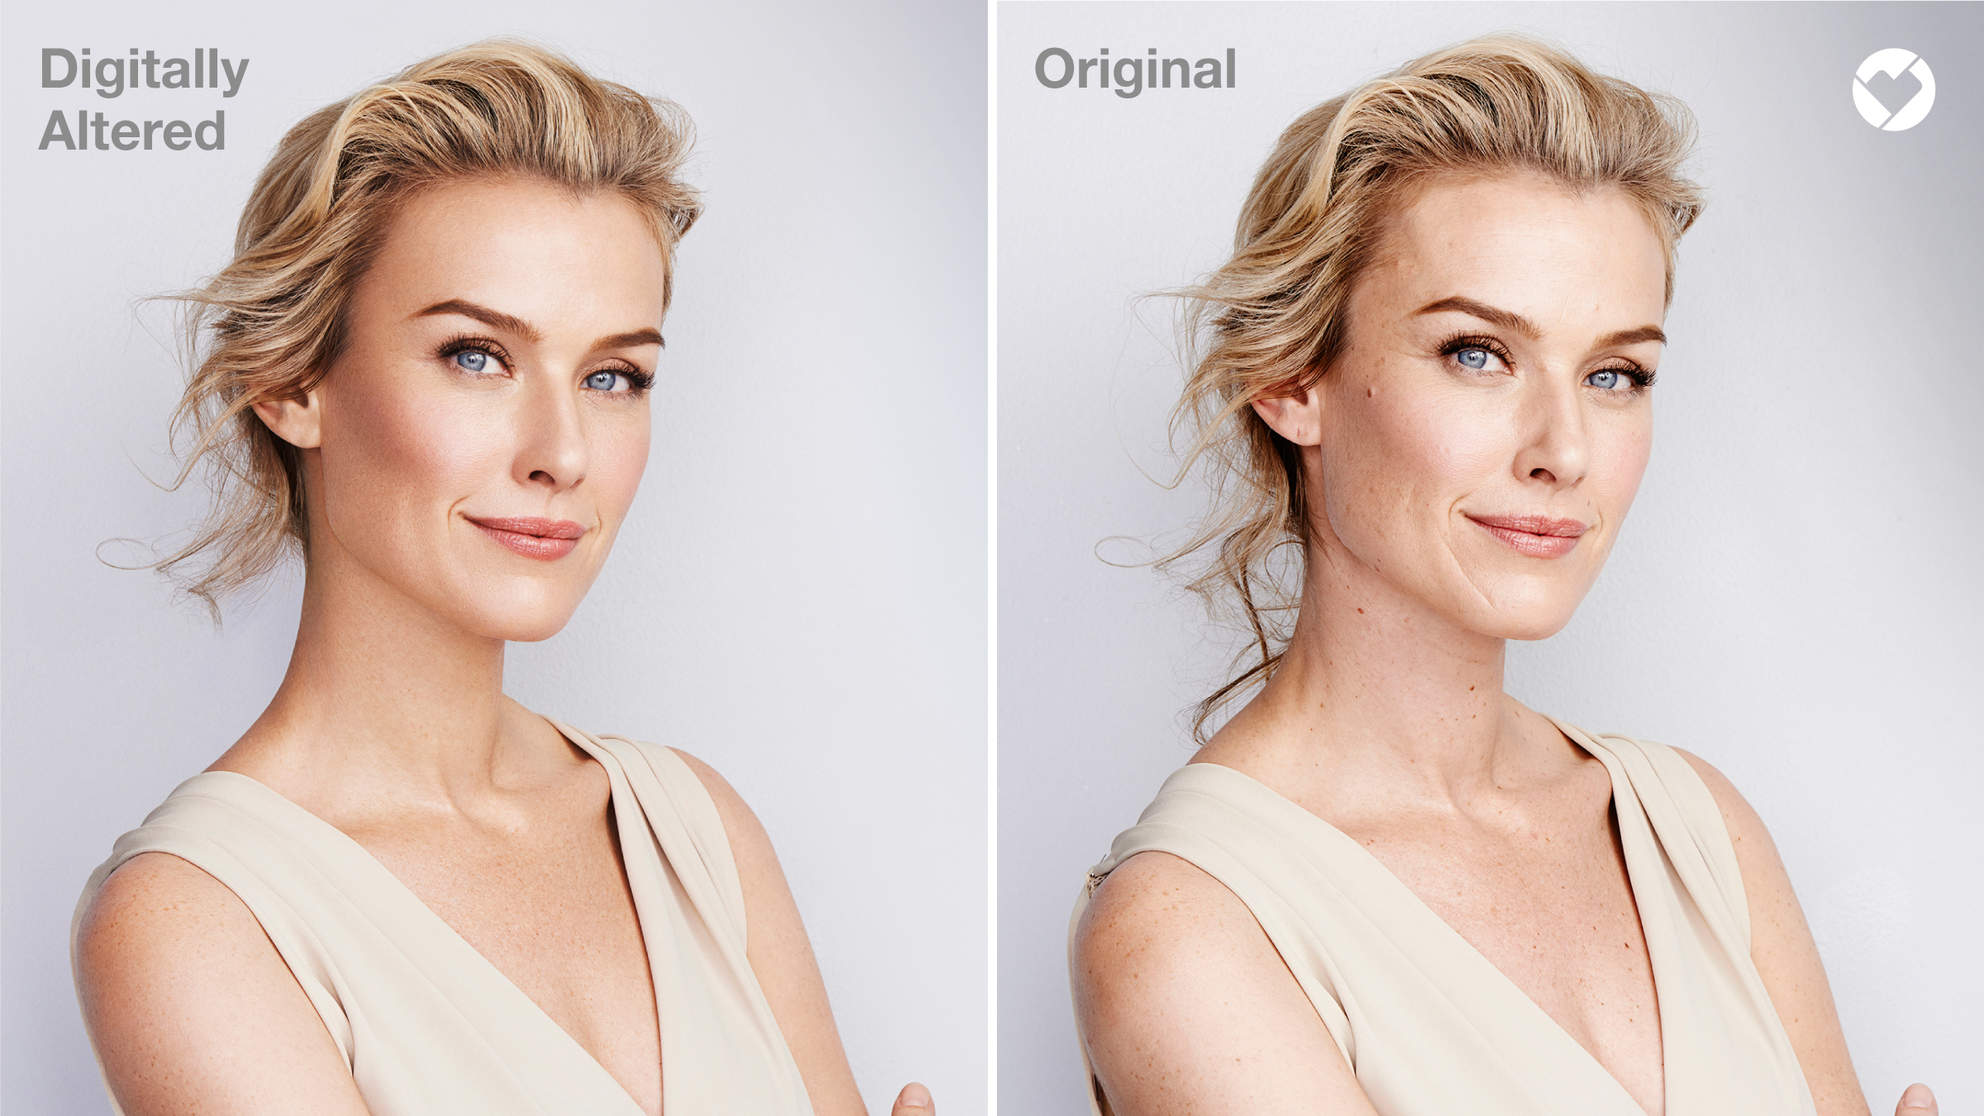 CVS Will No Longer Photoshop Ads of Their Beauty Products: 'We Have a Responsibility'